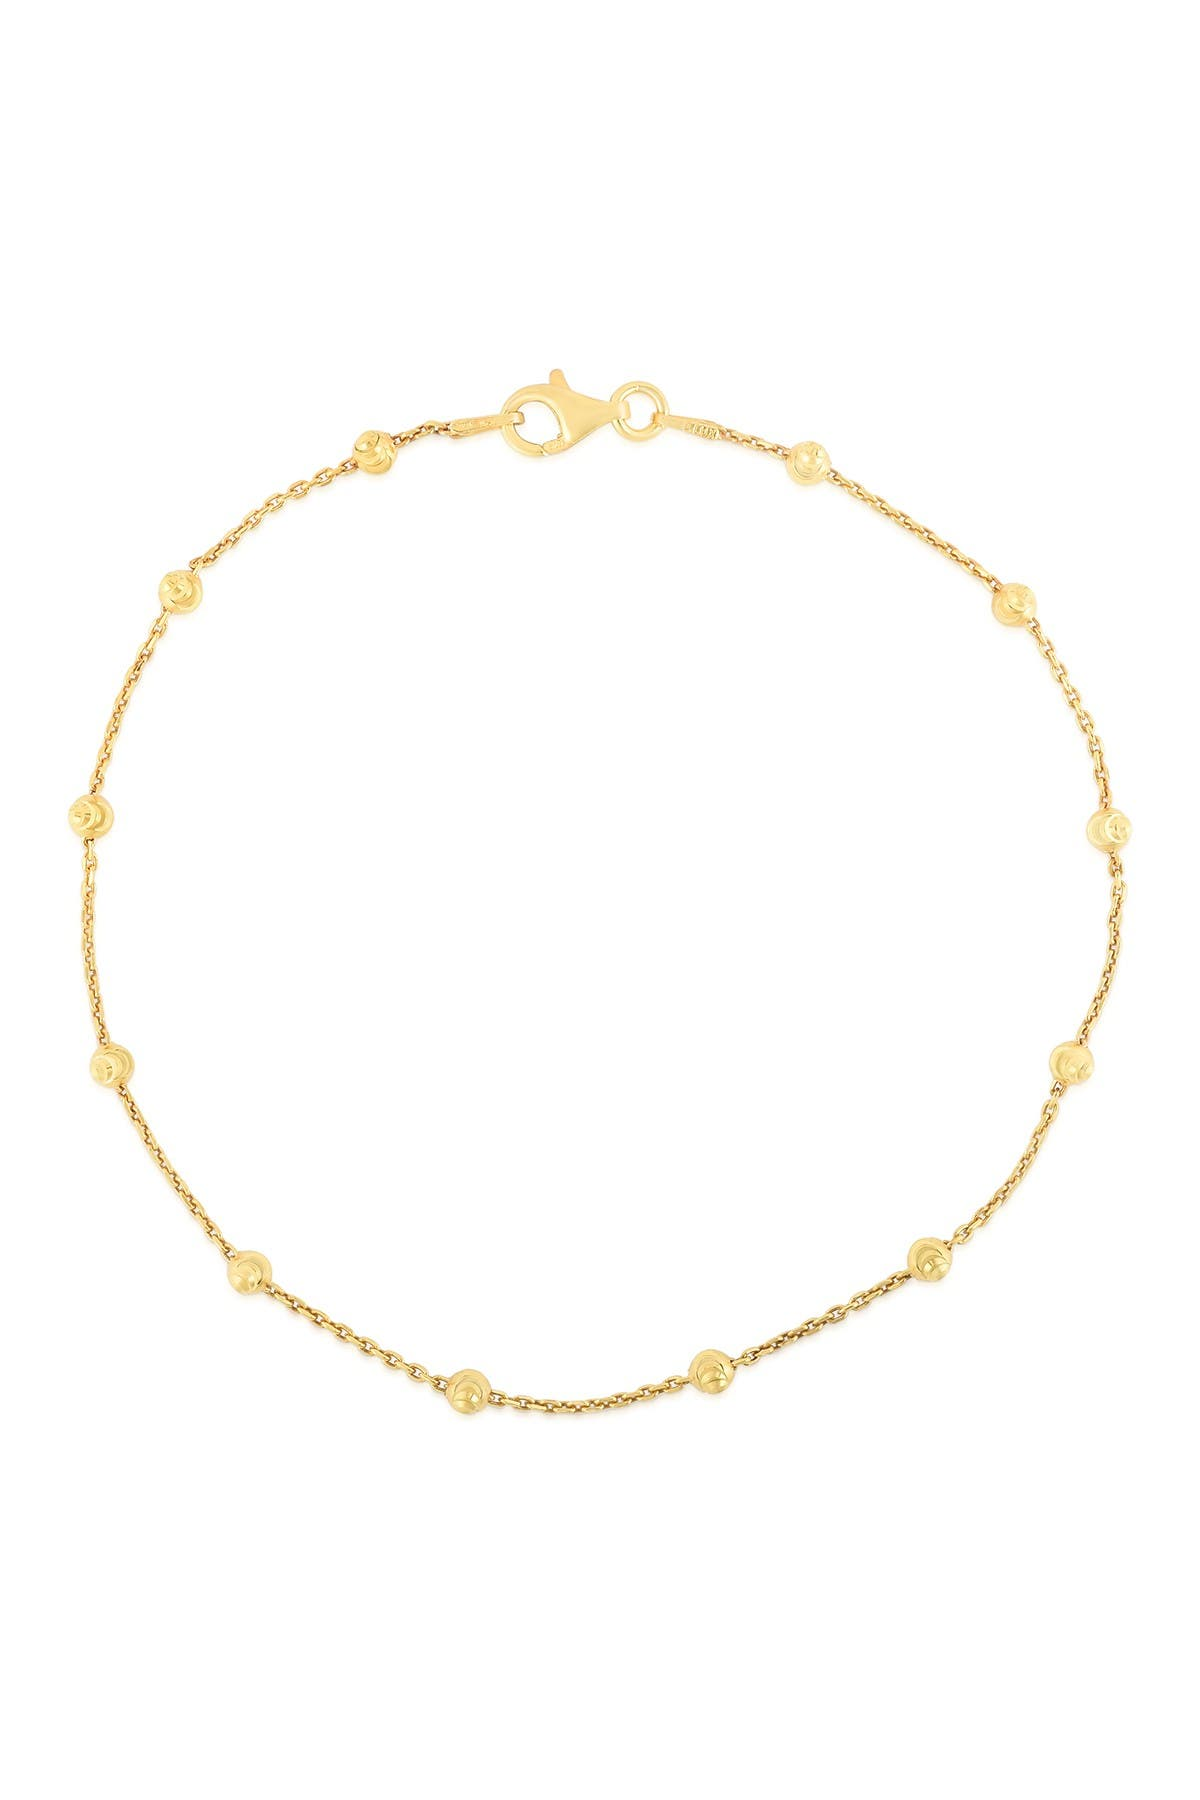 Image of Sphera Milano 14K Gold Plated Sterling Silver Chain Ankelet